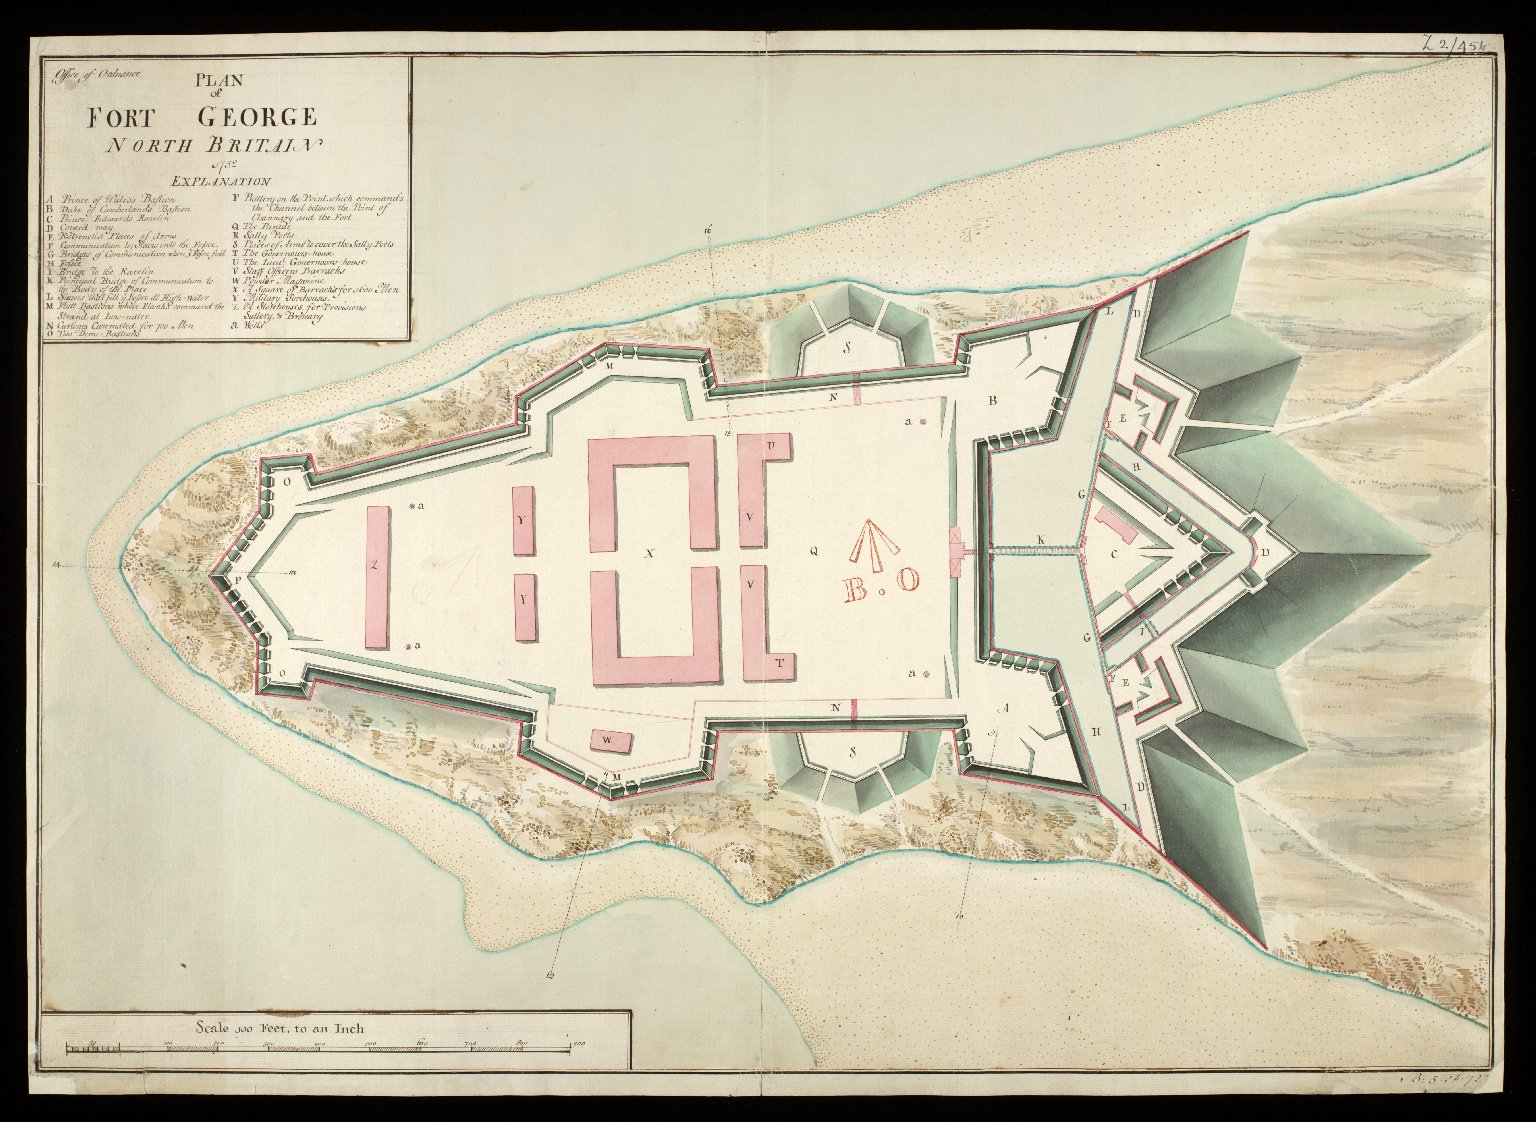 A Plan of Fort George North Britain 1752 [copy] [1 of 1]